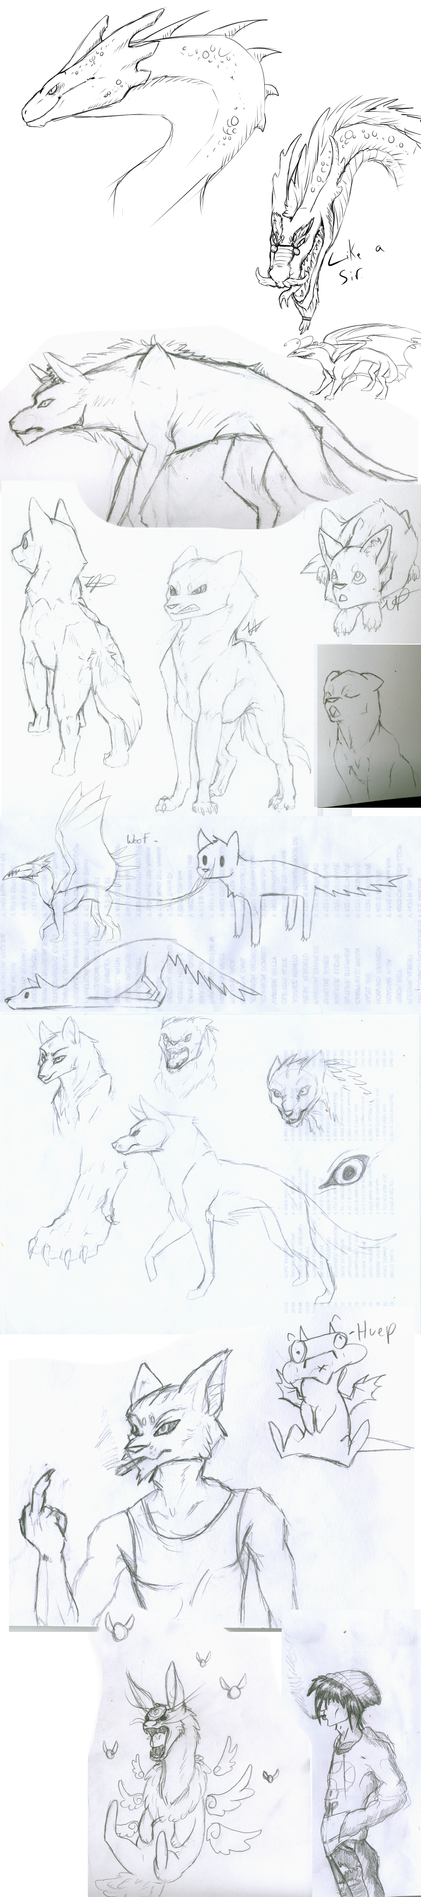 Sketchdump #3 by jebANON